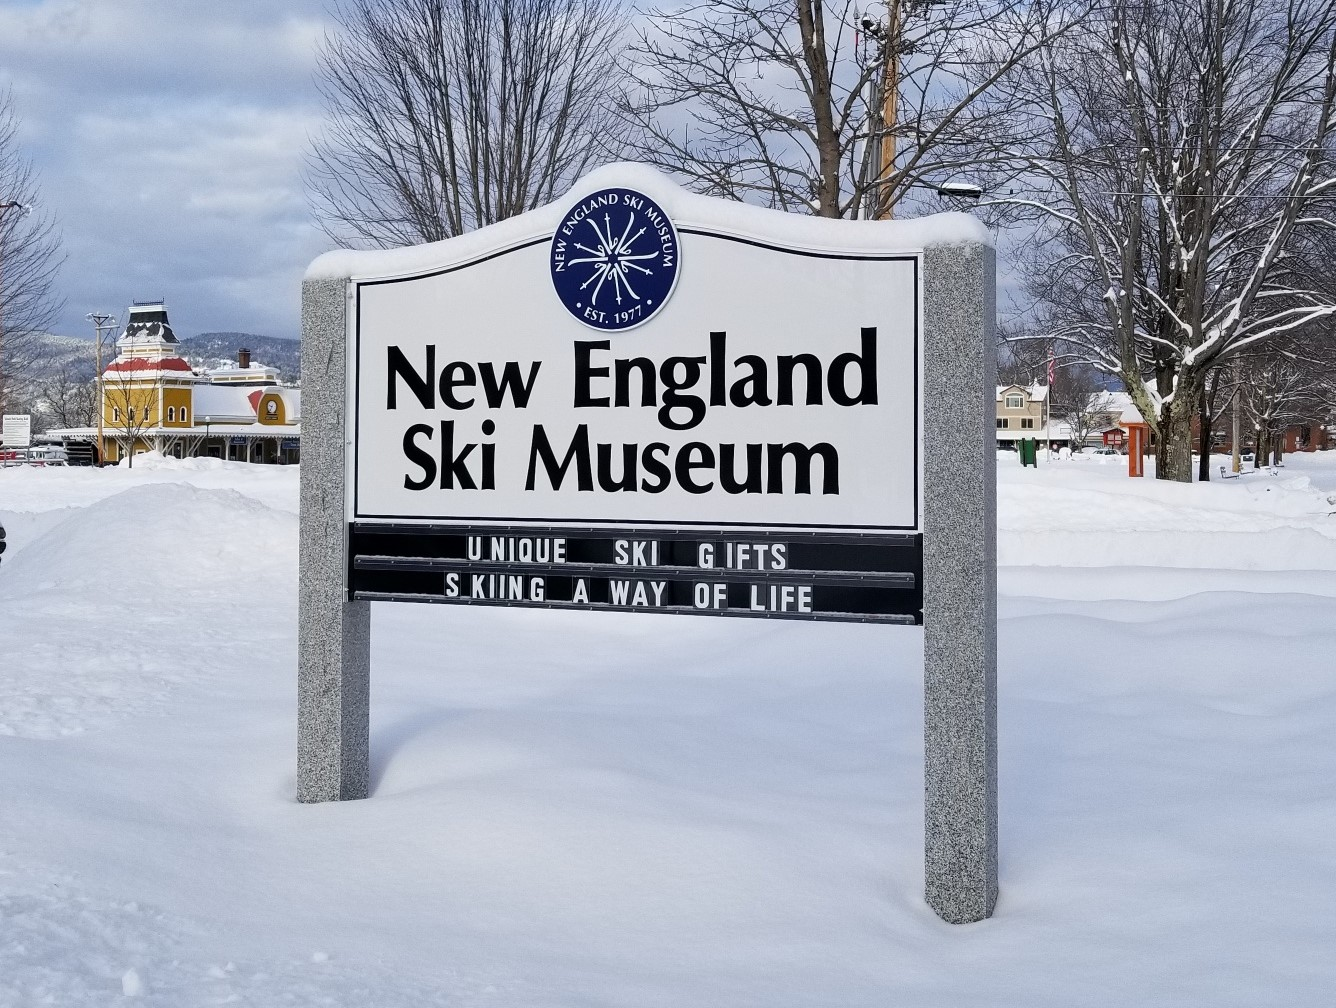 Ski Museum in winter